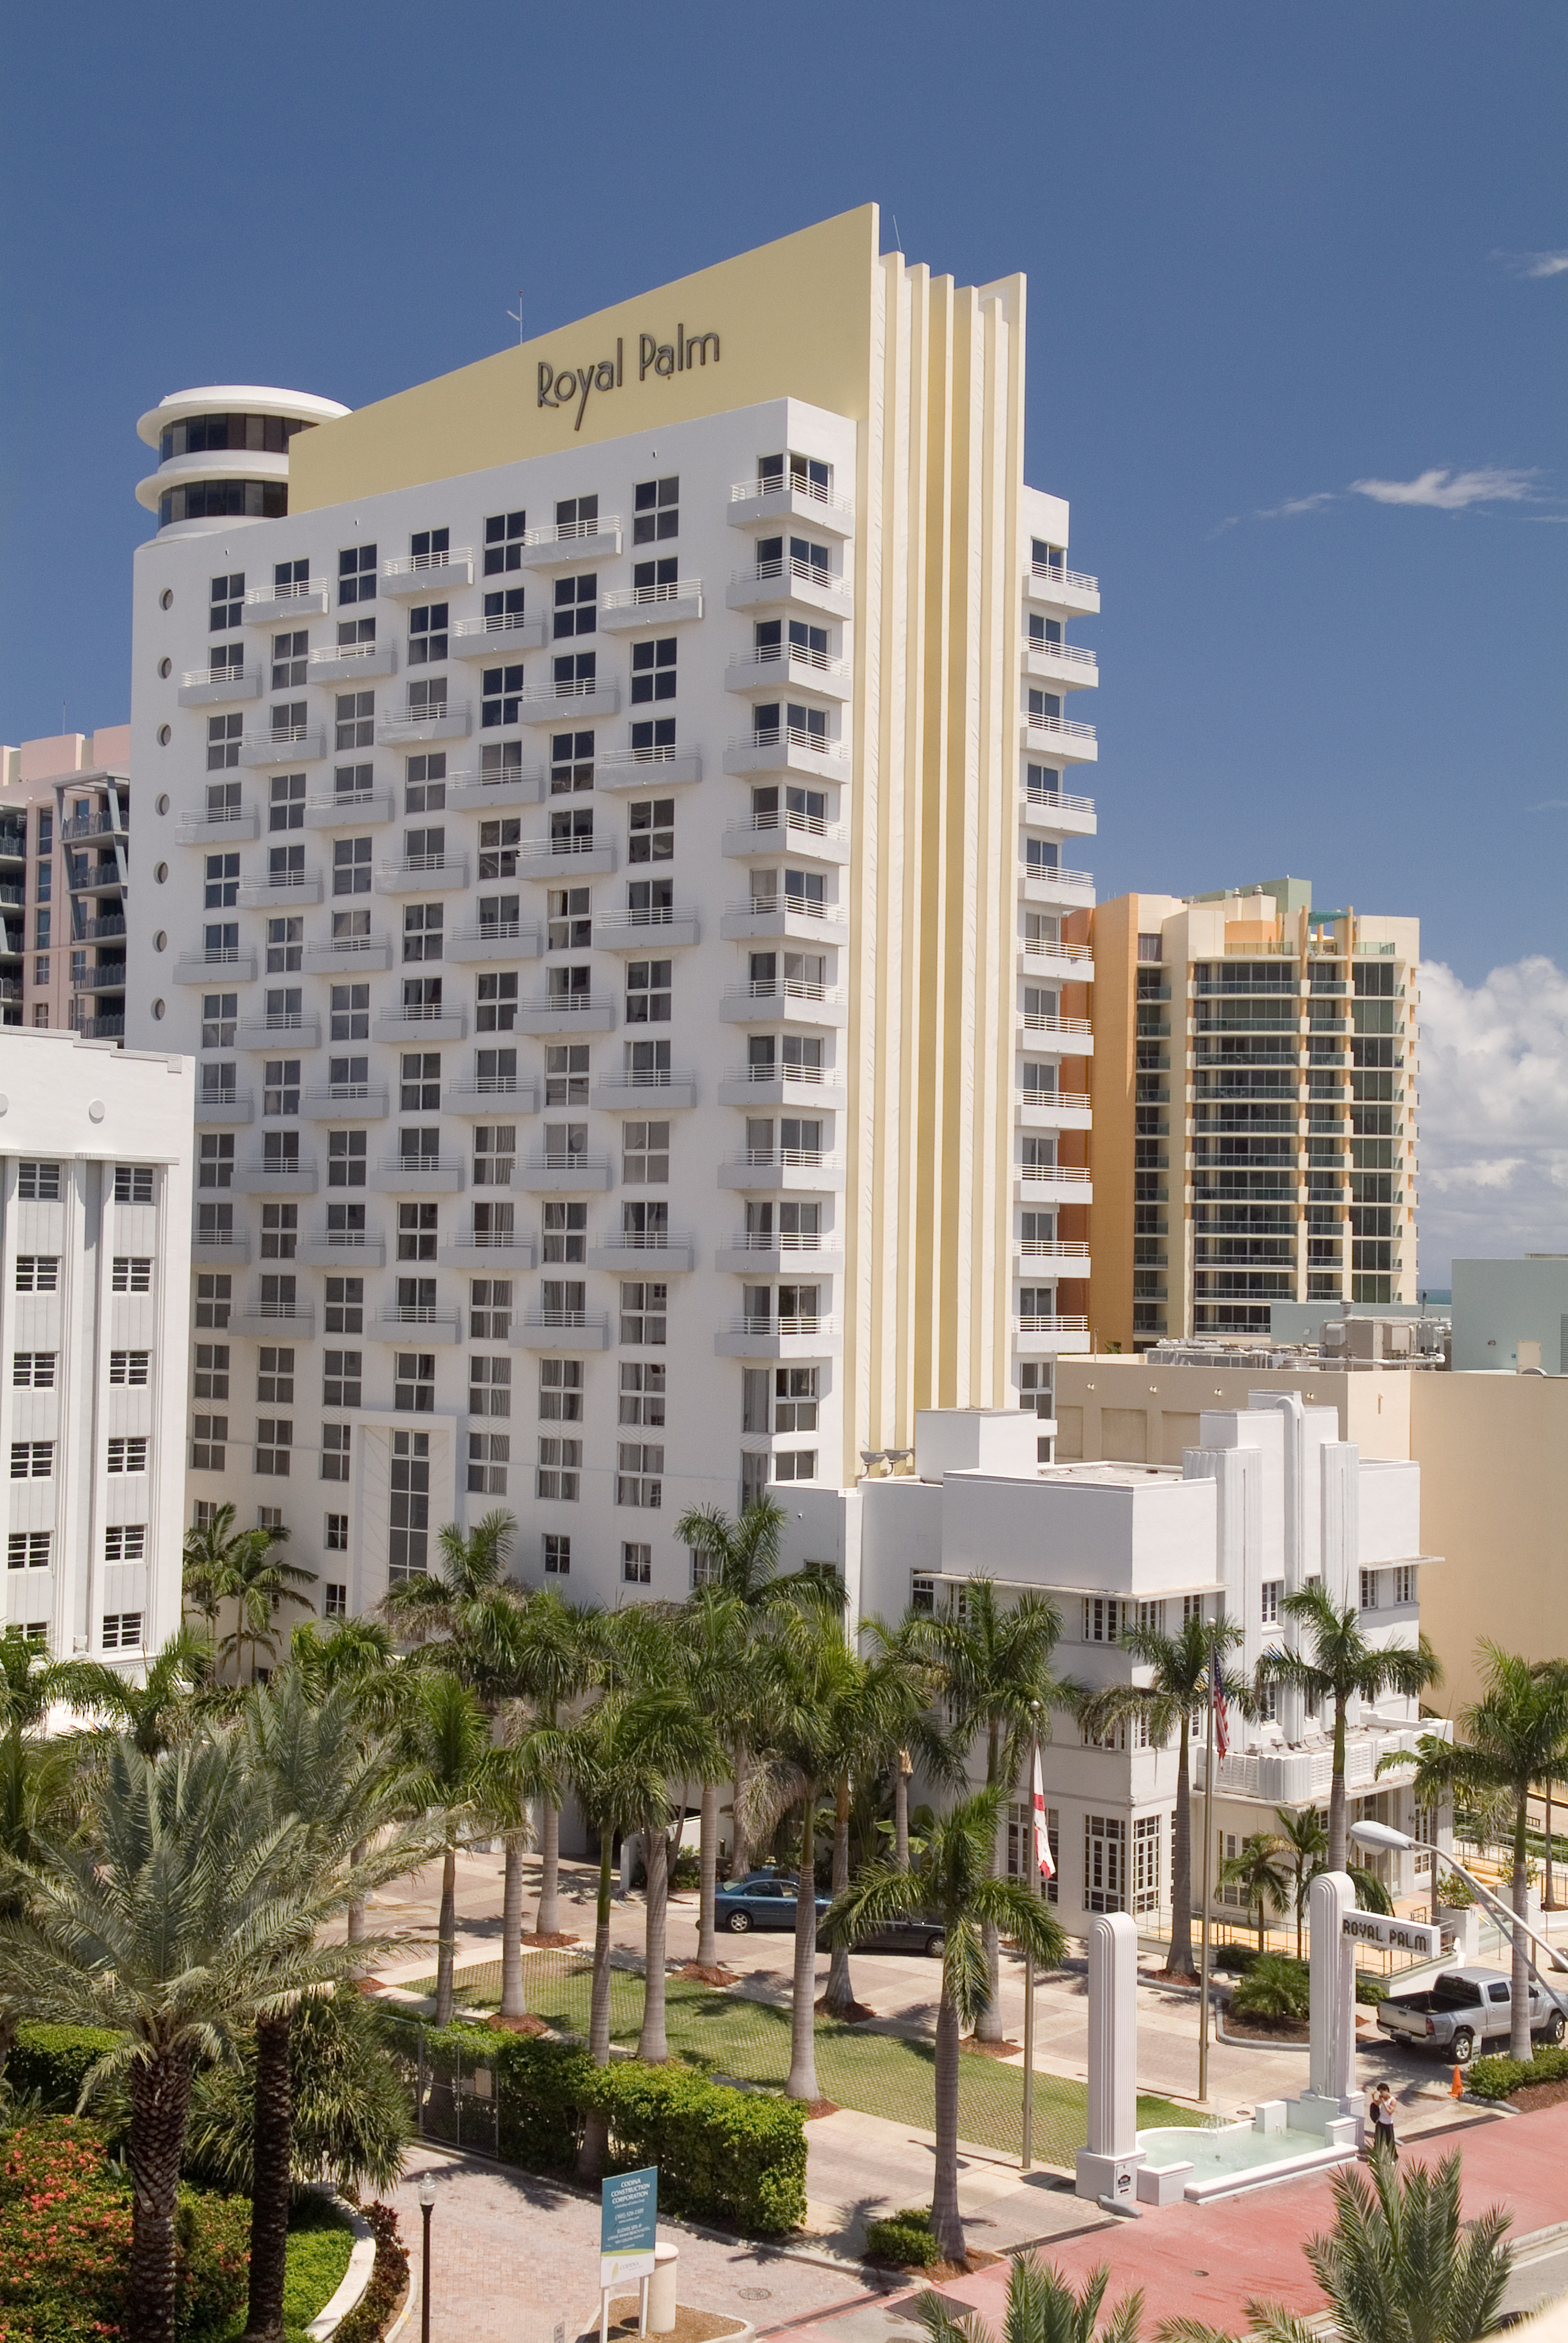 by of news in gardens hotel curio design triptych hotels district announces worldwide cheap collection miami garden a signing hilton